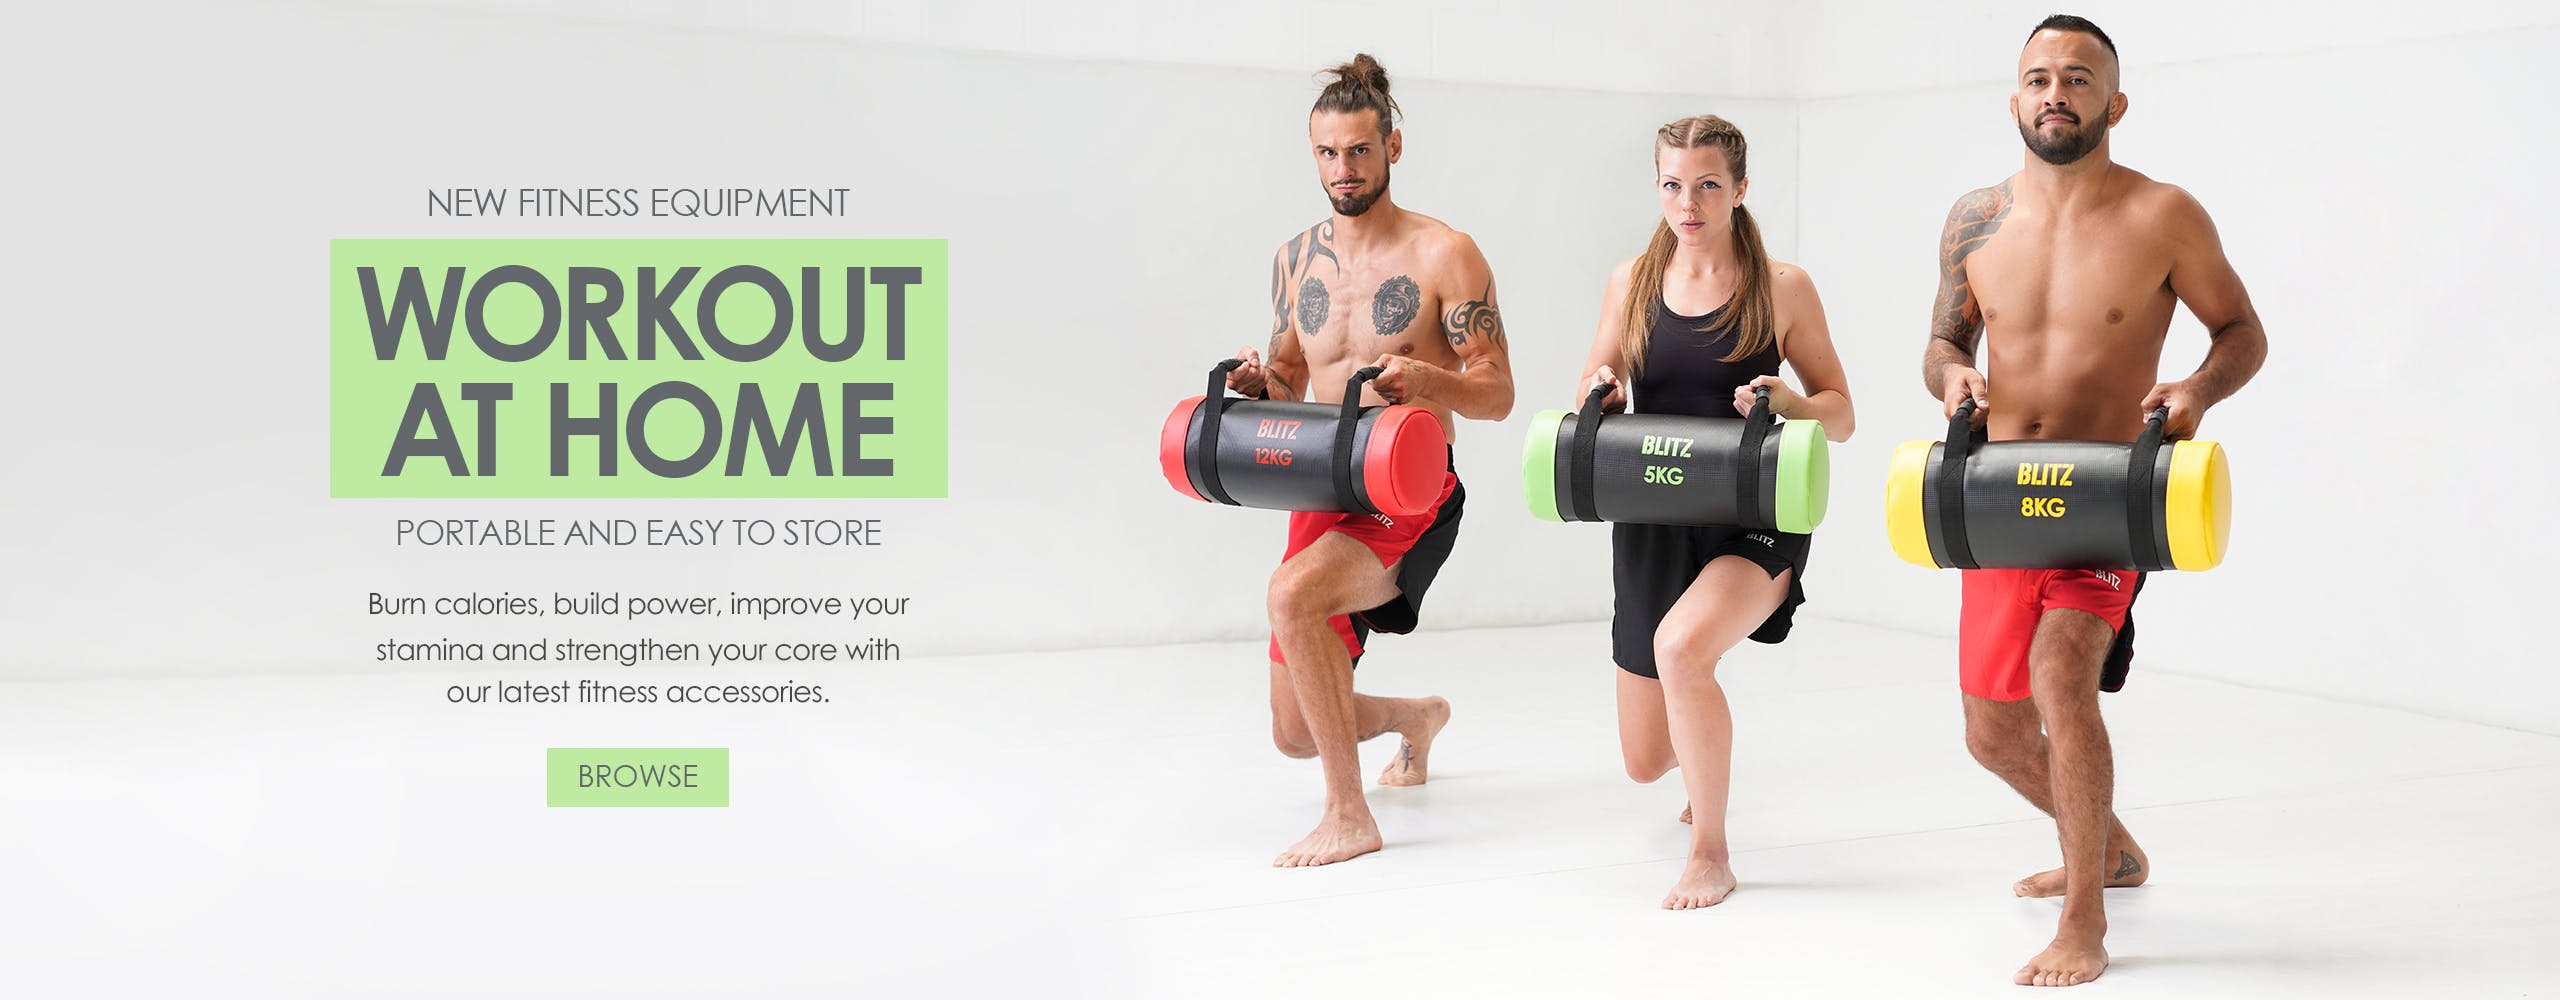 Workout at home with the latest portable fitness equipment at Blitz. Burn calories, build power, improve your stamina and strengthen your core today!